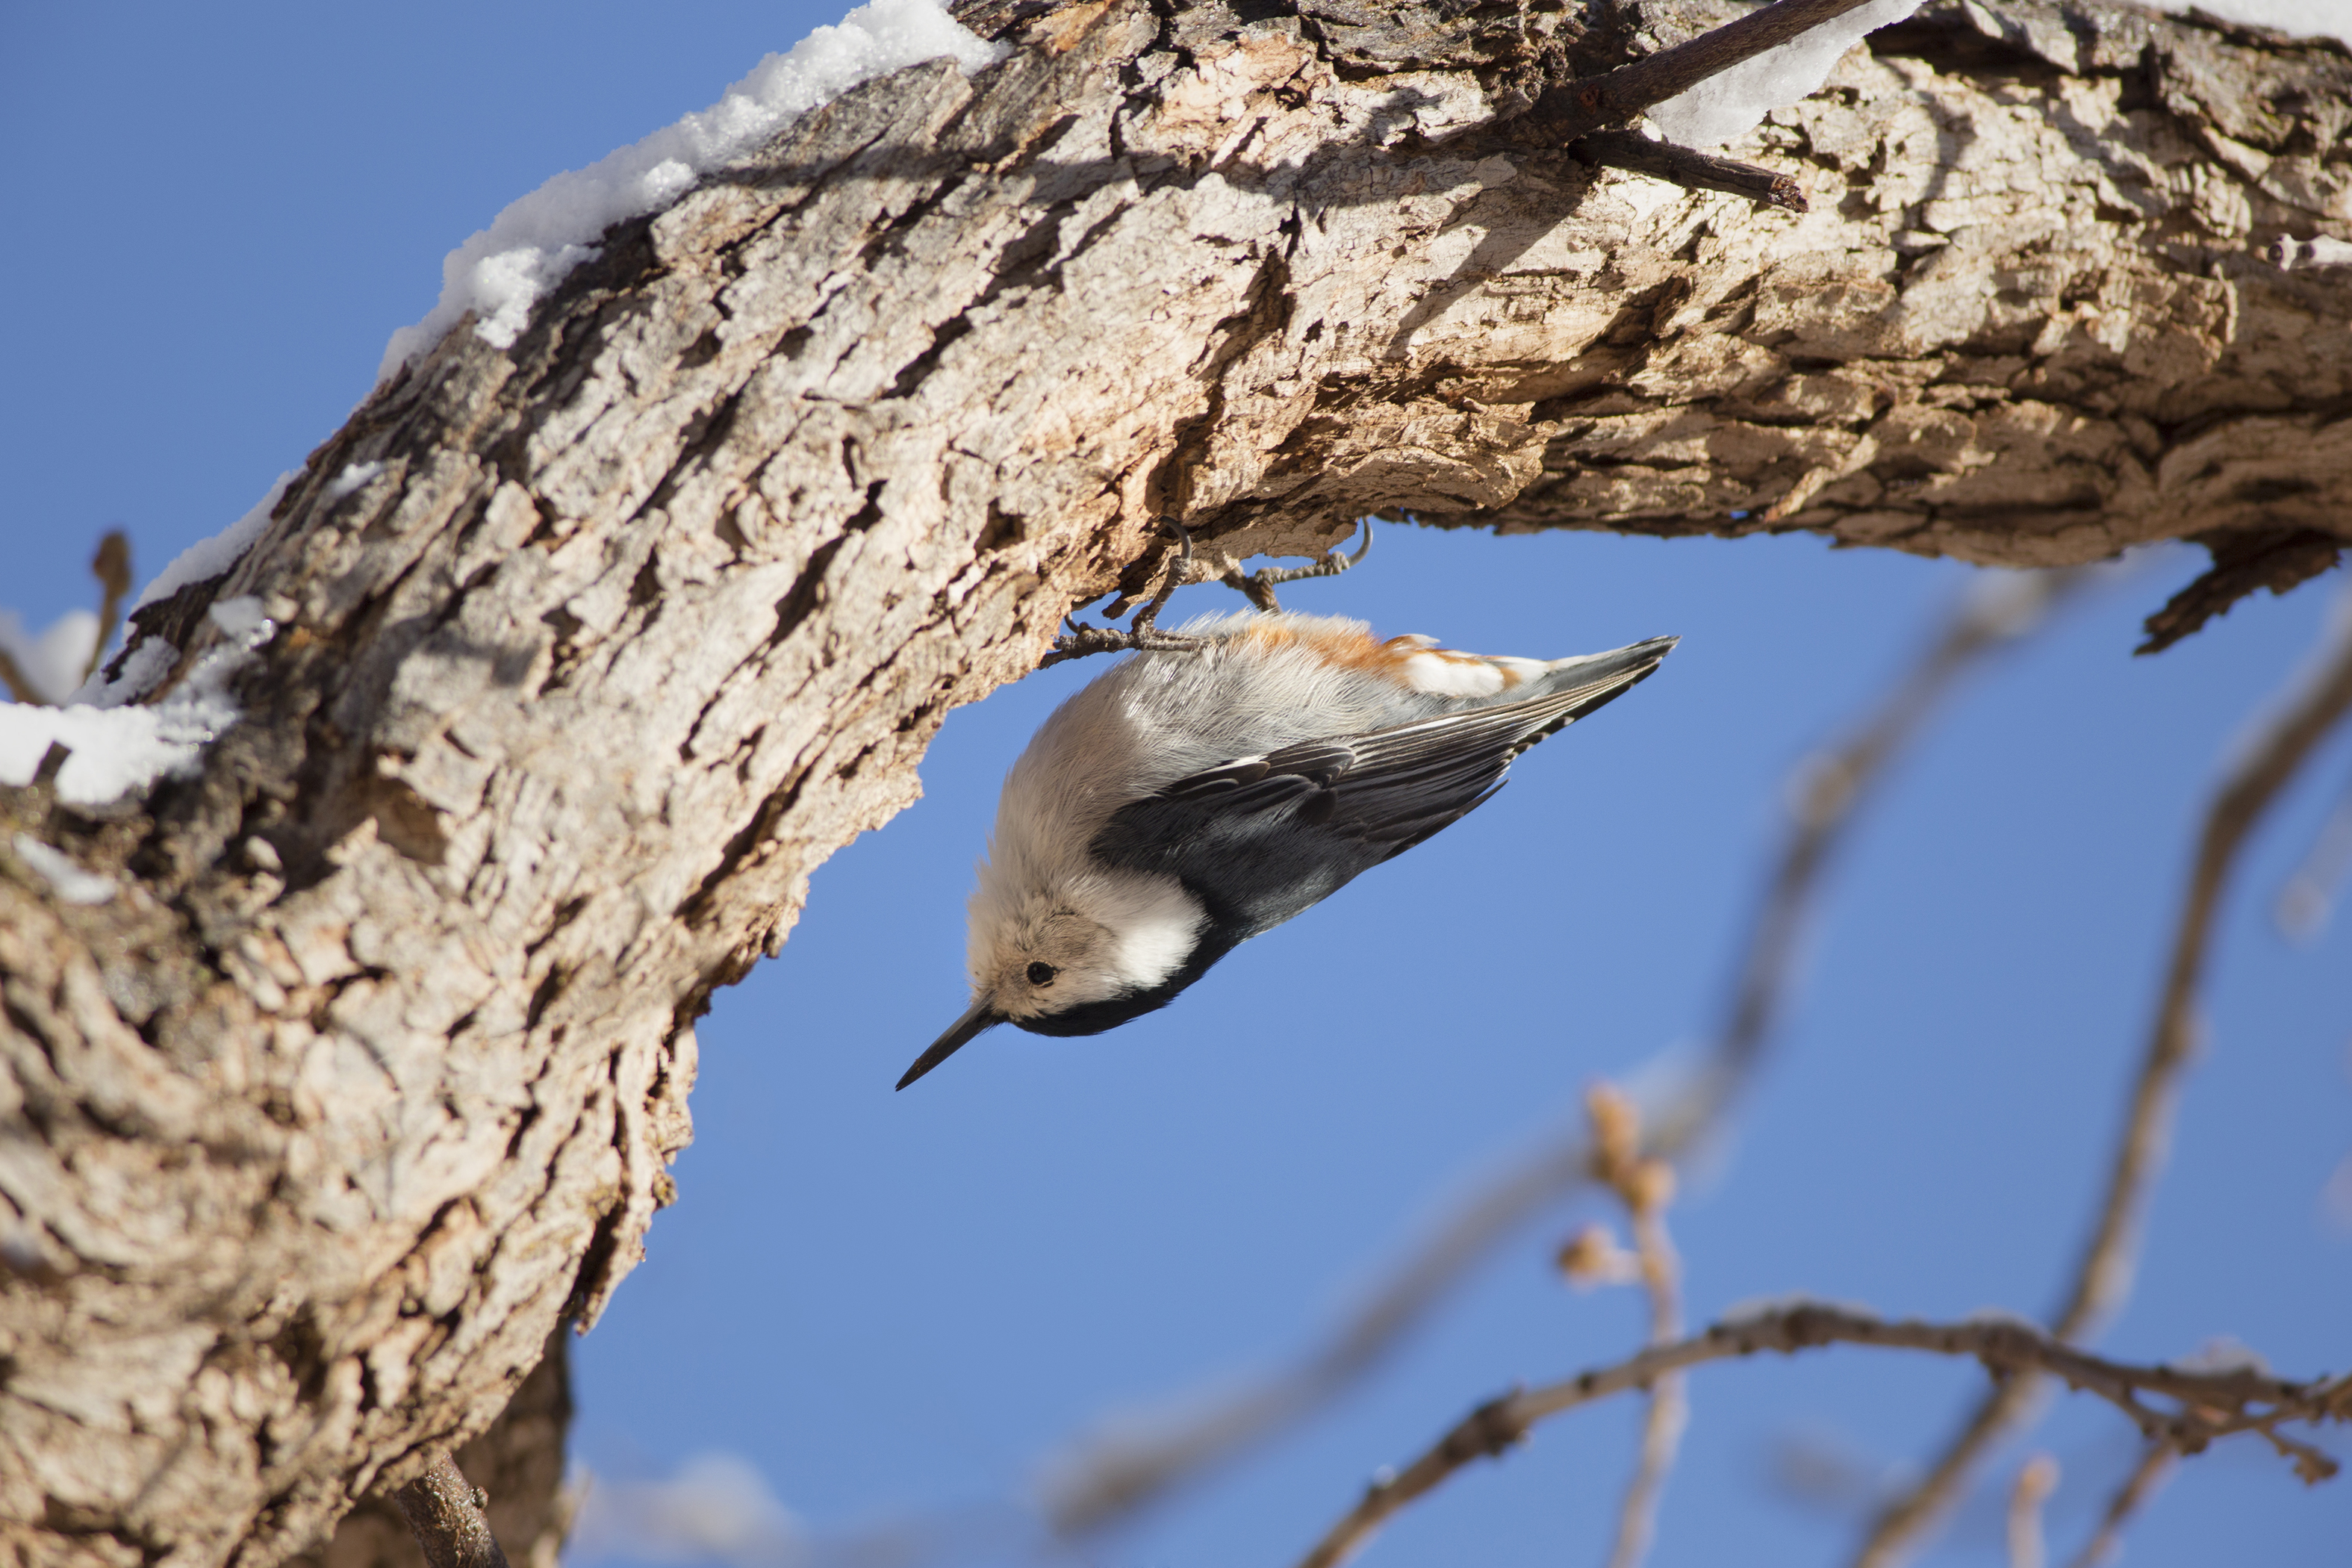 Rhode Island Birds on the Brink: Confronting the Challenges of Climate Change